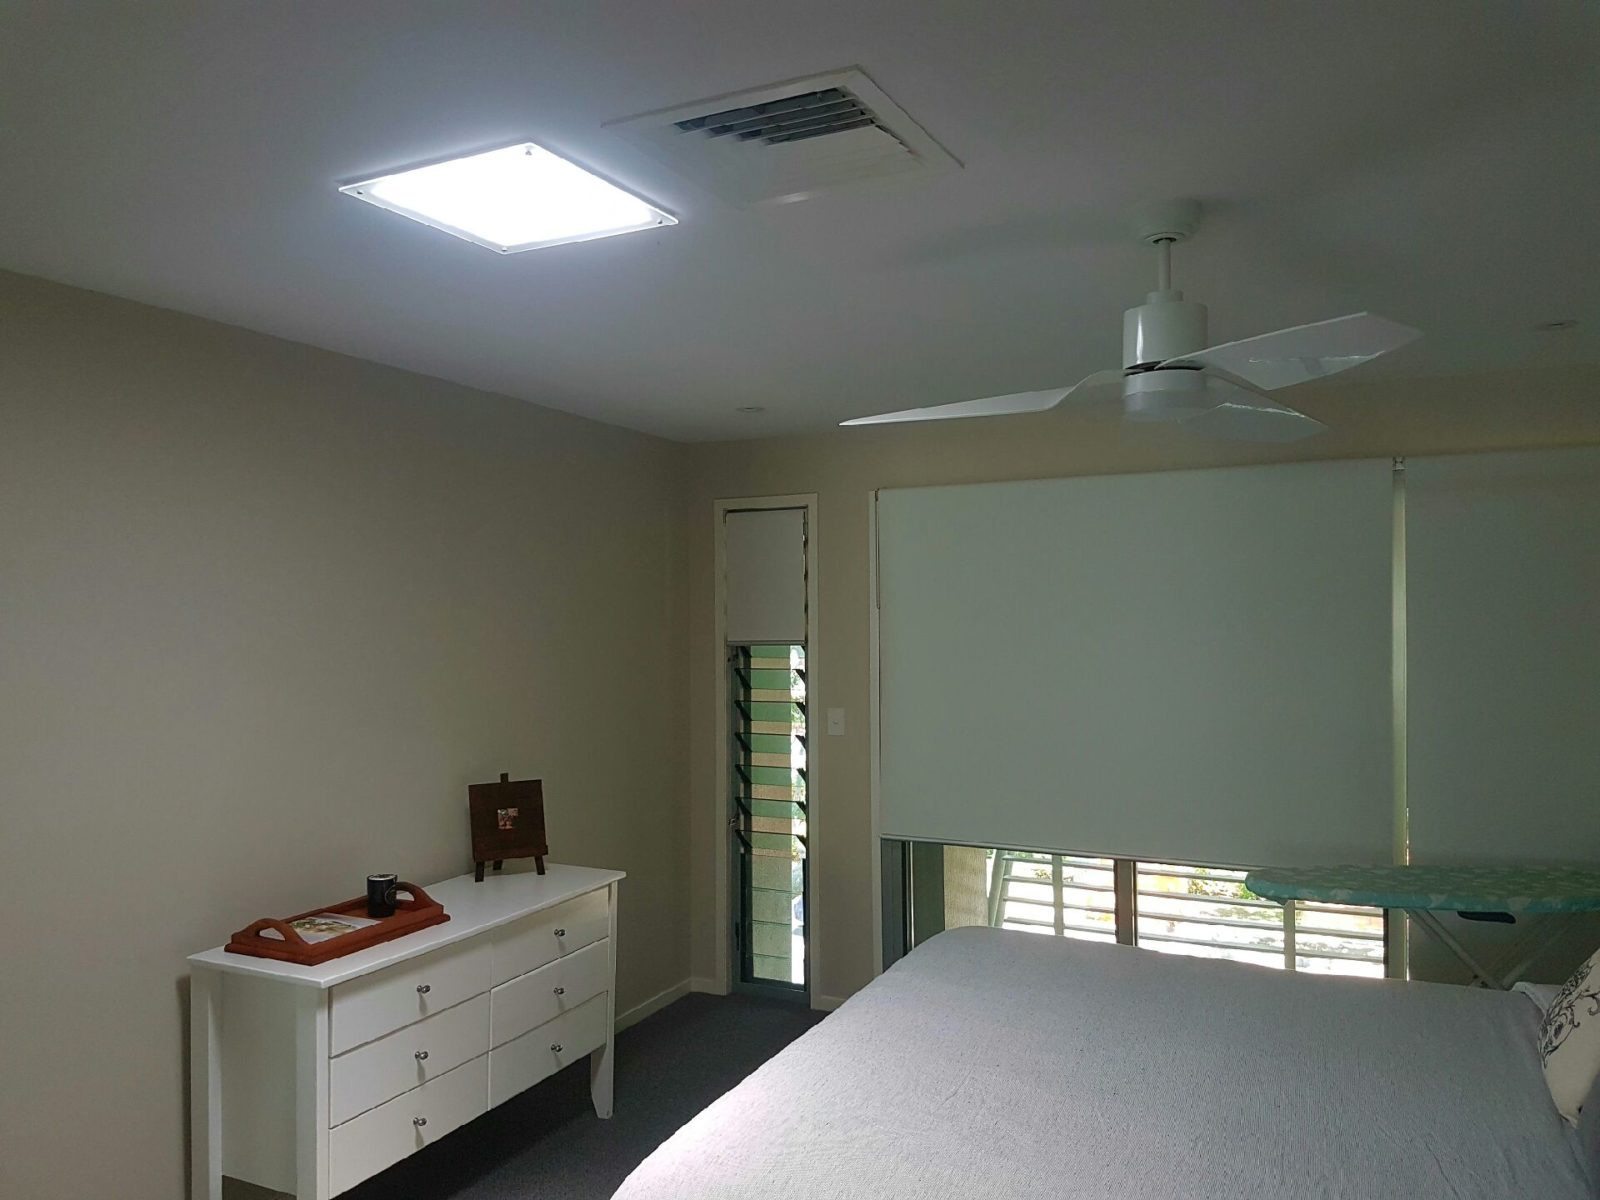 Light Shop Adelaide Buy Skylights Led Lights Installation In Adelaide Solatube